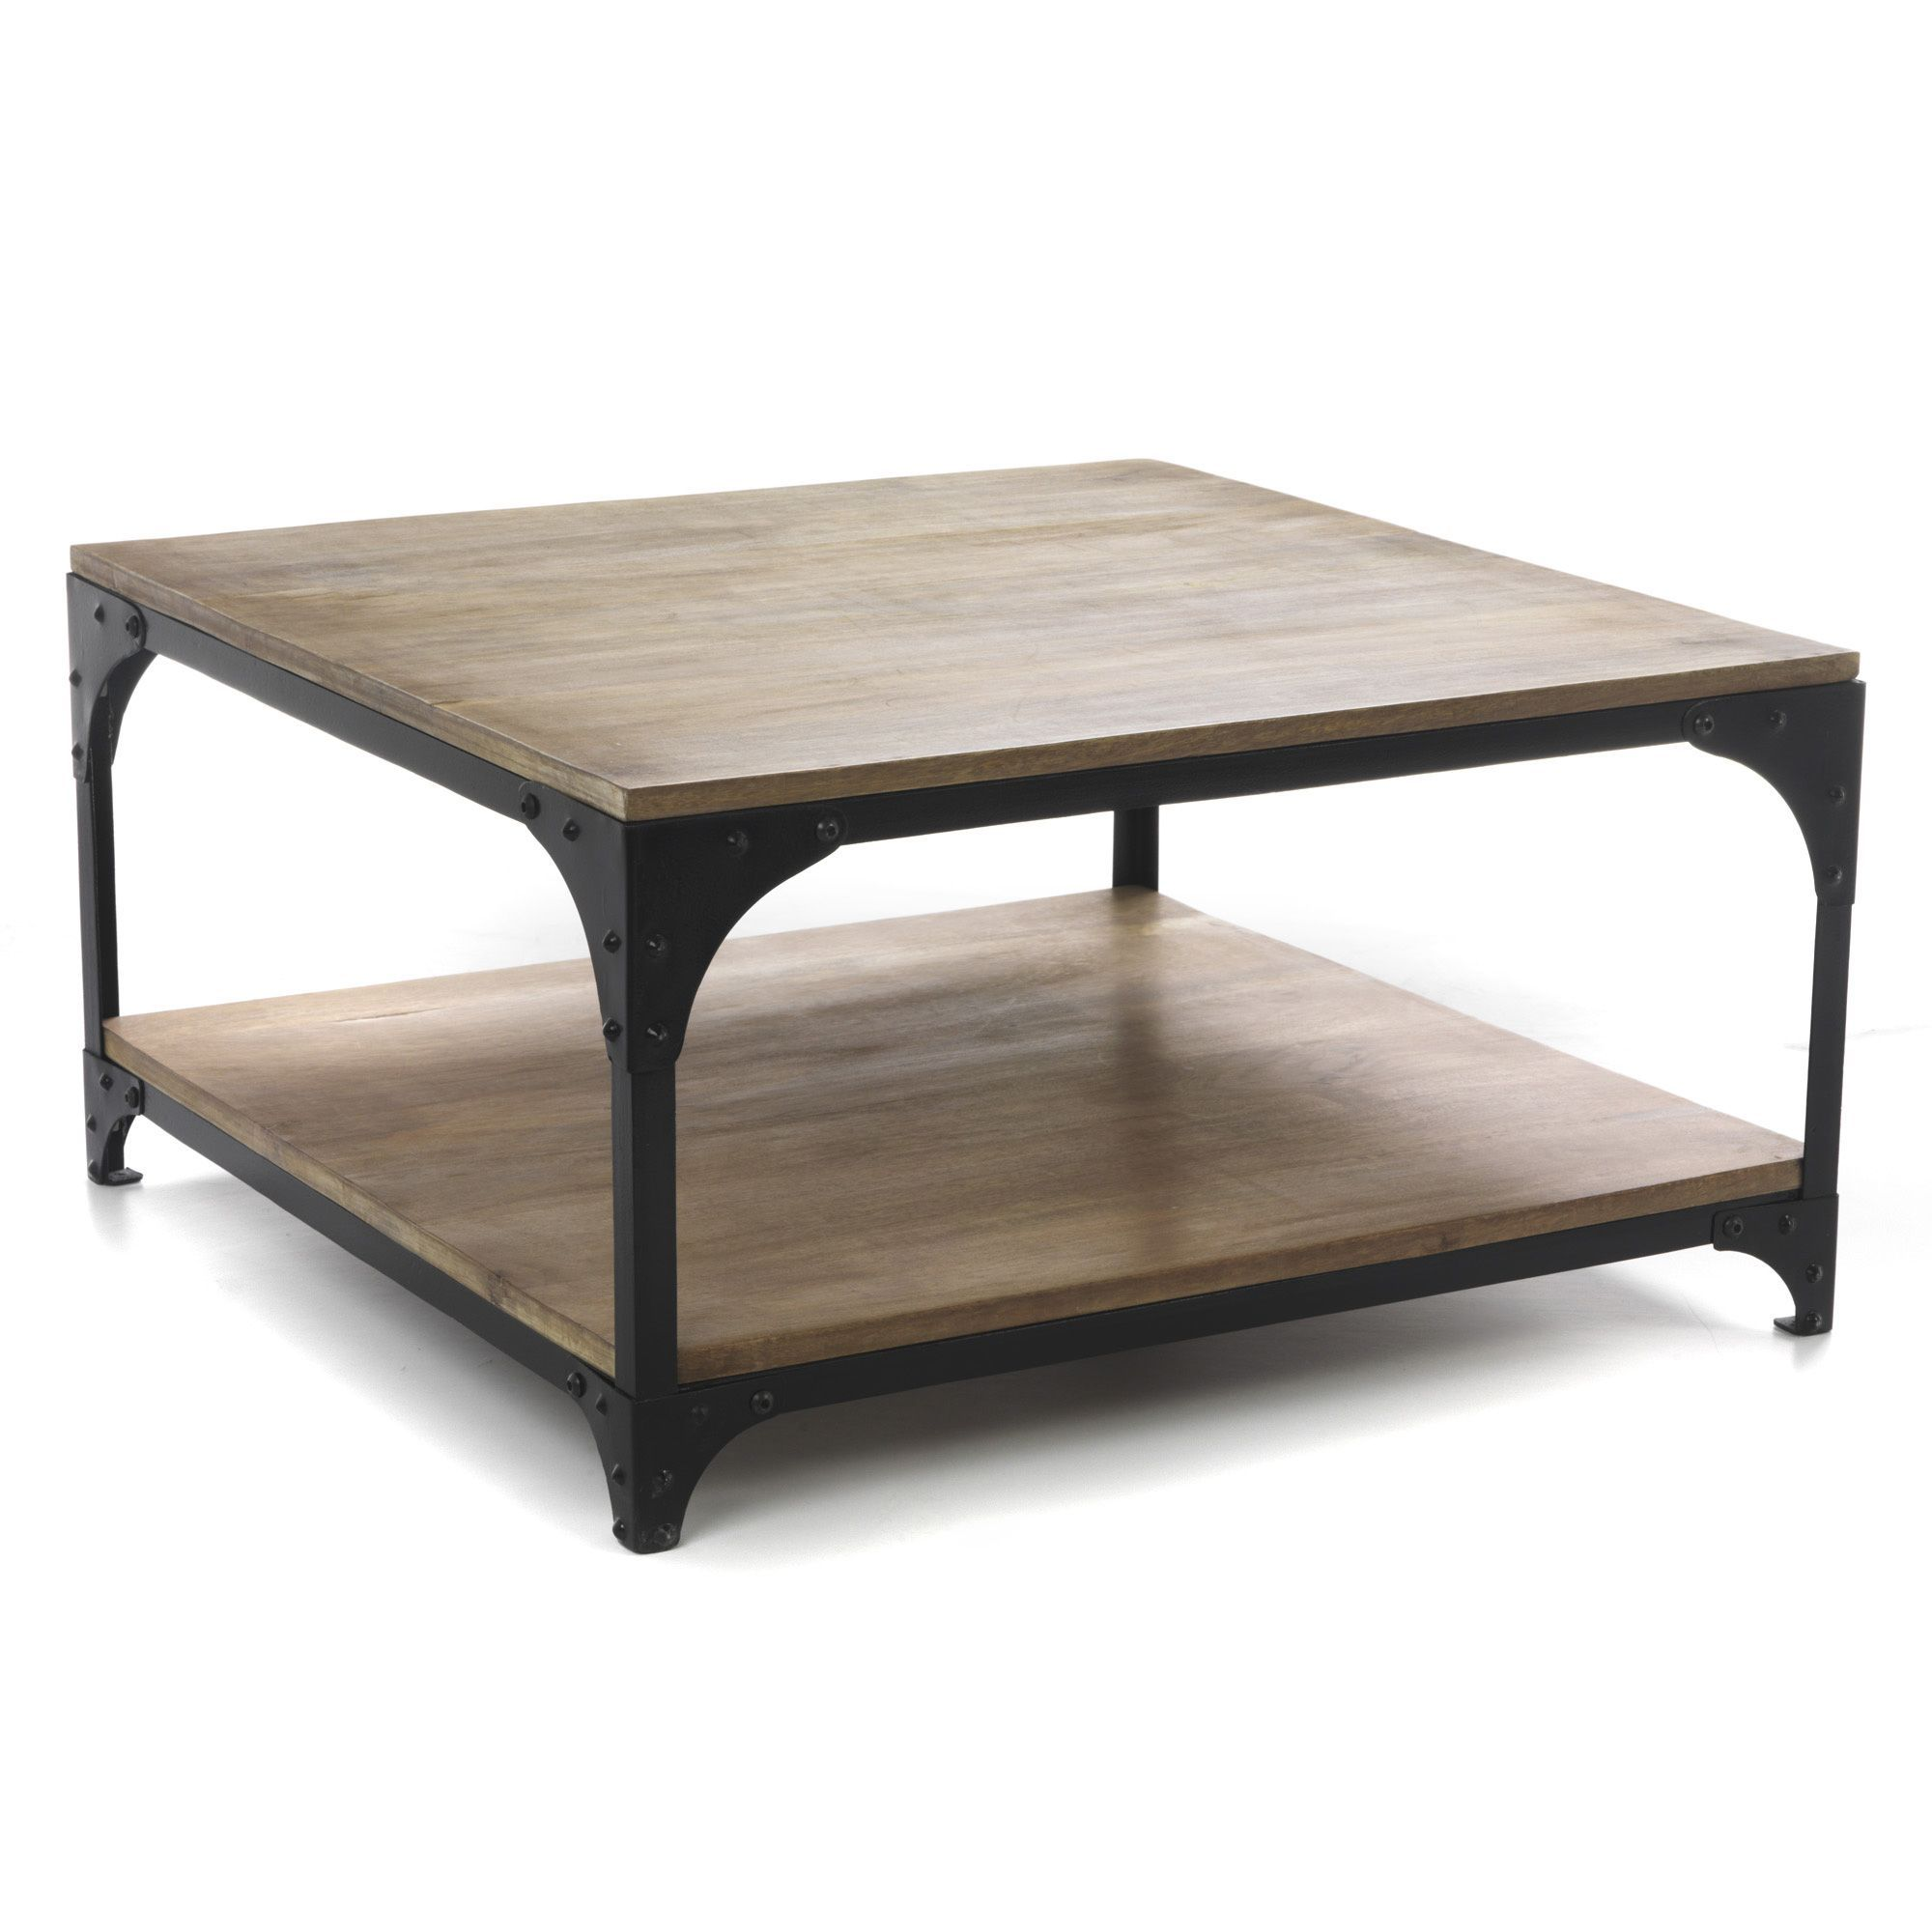 Table basse carr e industrielle naturel new ately les tables basses tab - Table salle a manger carree ...